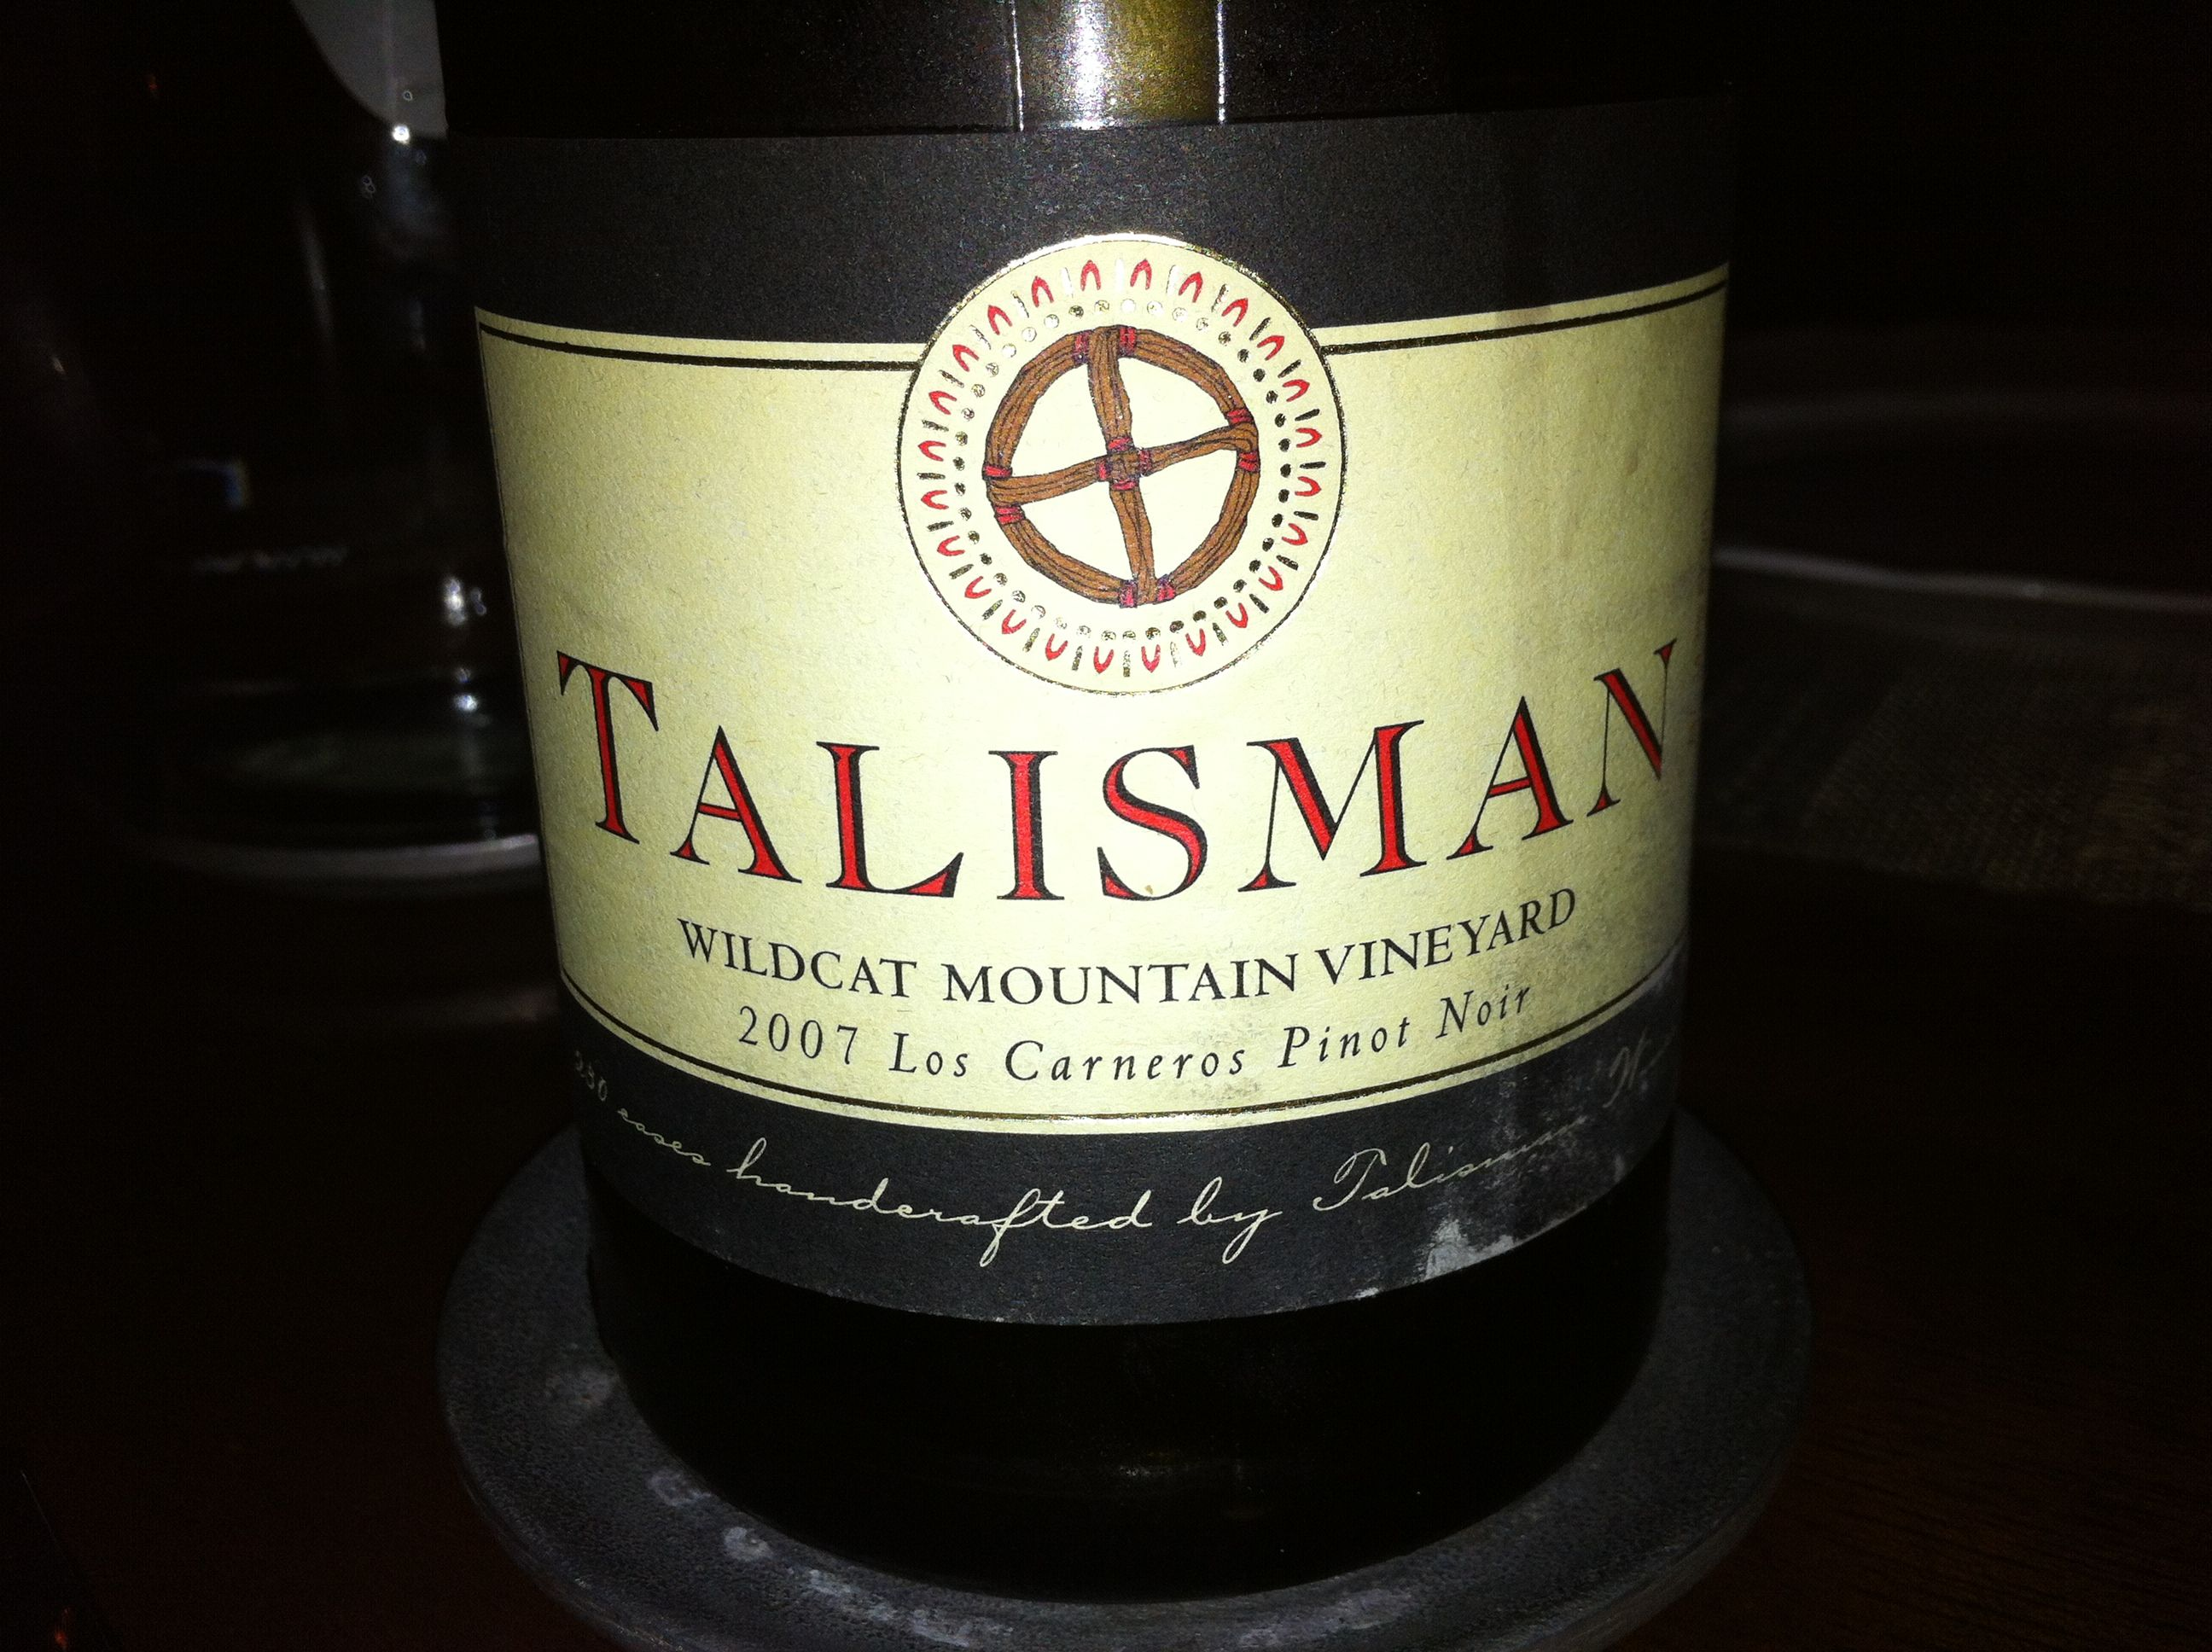 I'd never tried this Talisman Wildcat Mountain, Pinot, Carneros 07